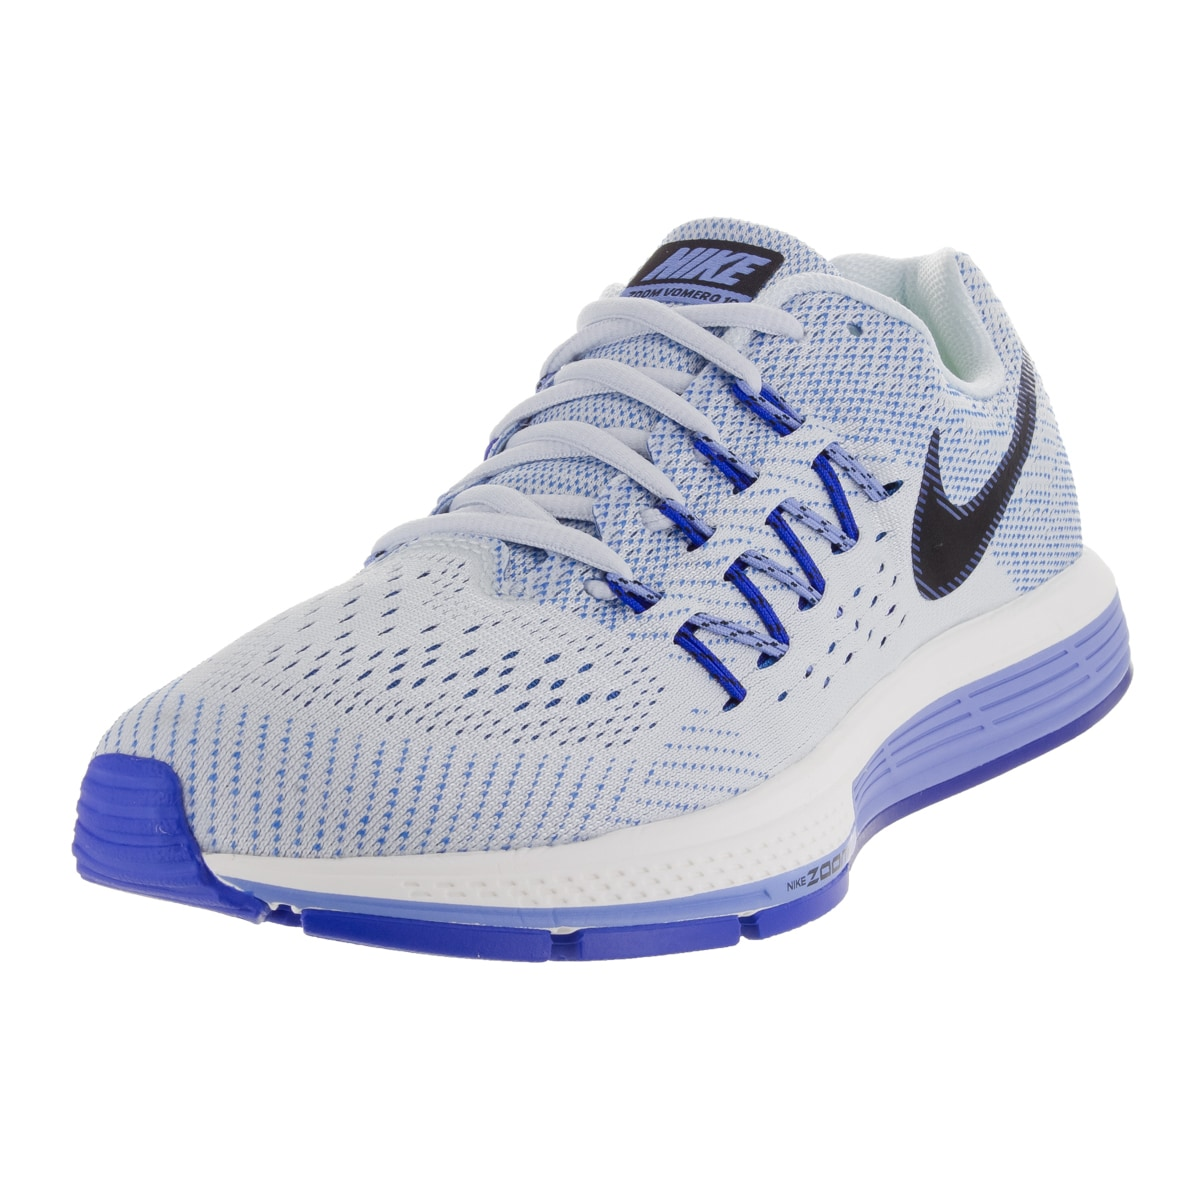 online retailer 60891 8228d Shop Nike Women s Air Zoom Vomero 10 Blue Tint Black Chalk Blue Running Shoe  - Free Shipping Today - Overstock - 12328803